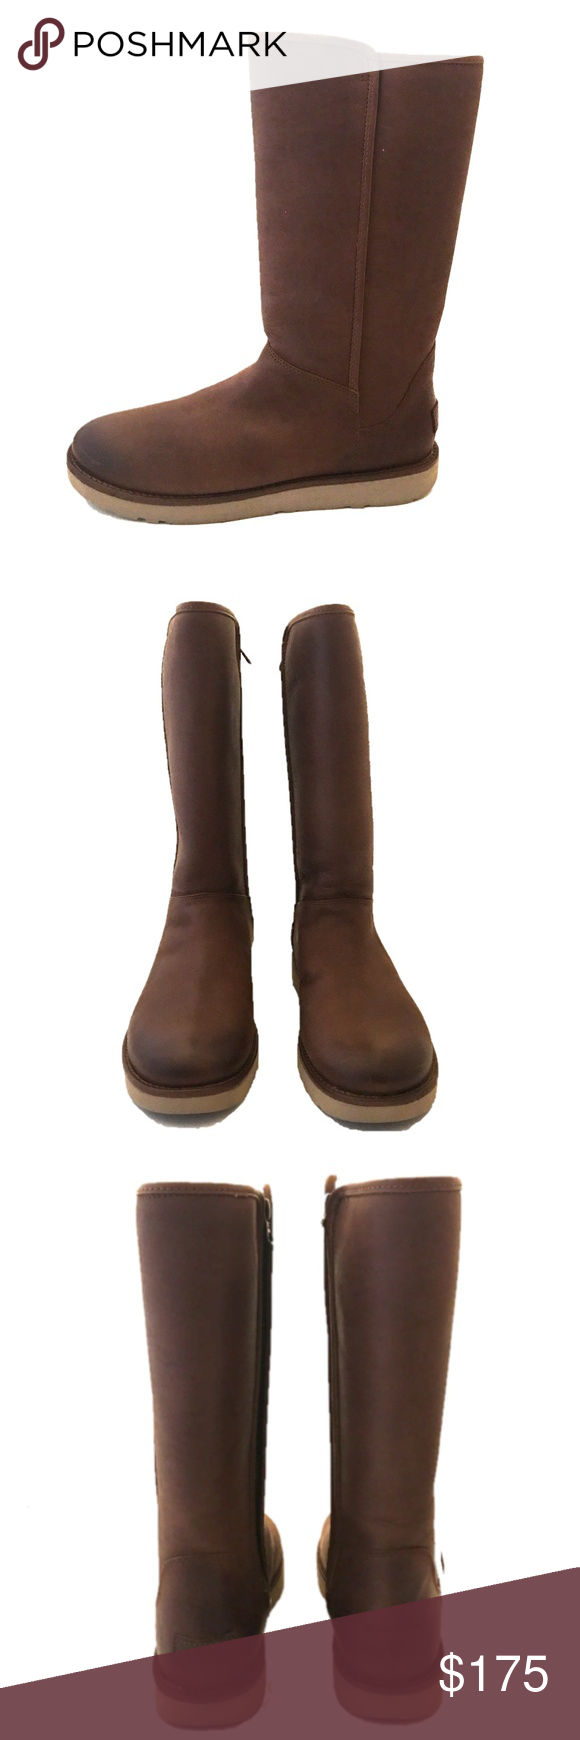 9ab31cd864f UGG Abree II Leather Boot - NWOB 100% AUTHENTIC! Rich leather is ...